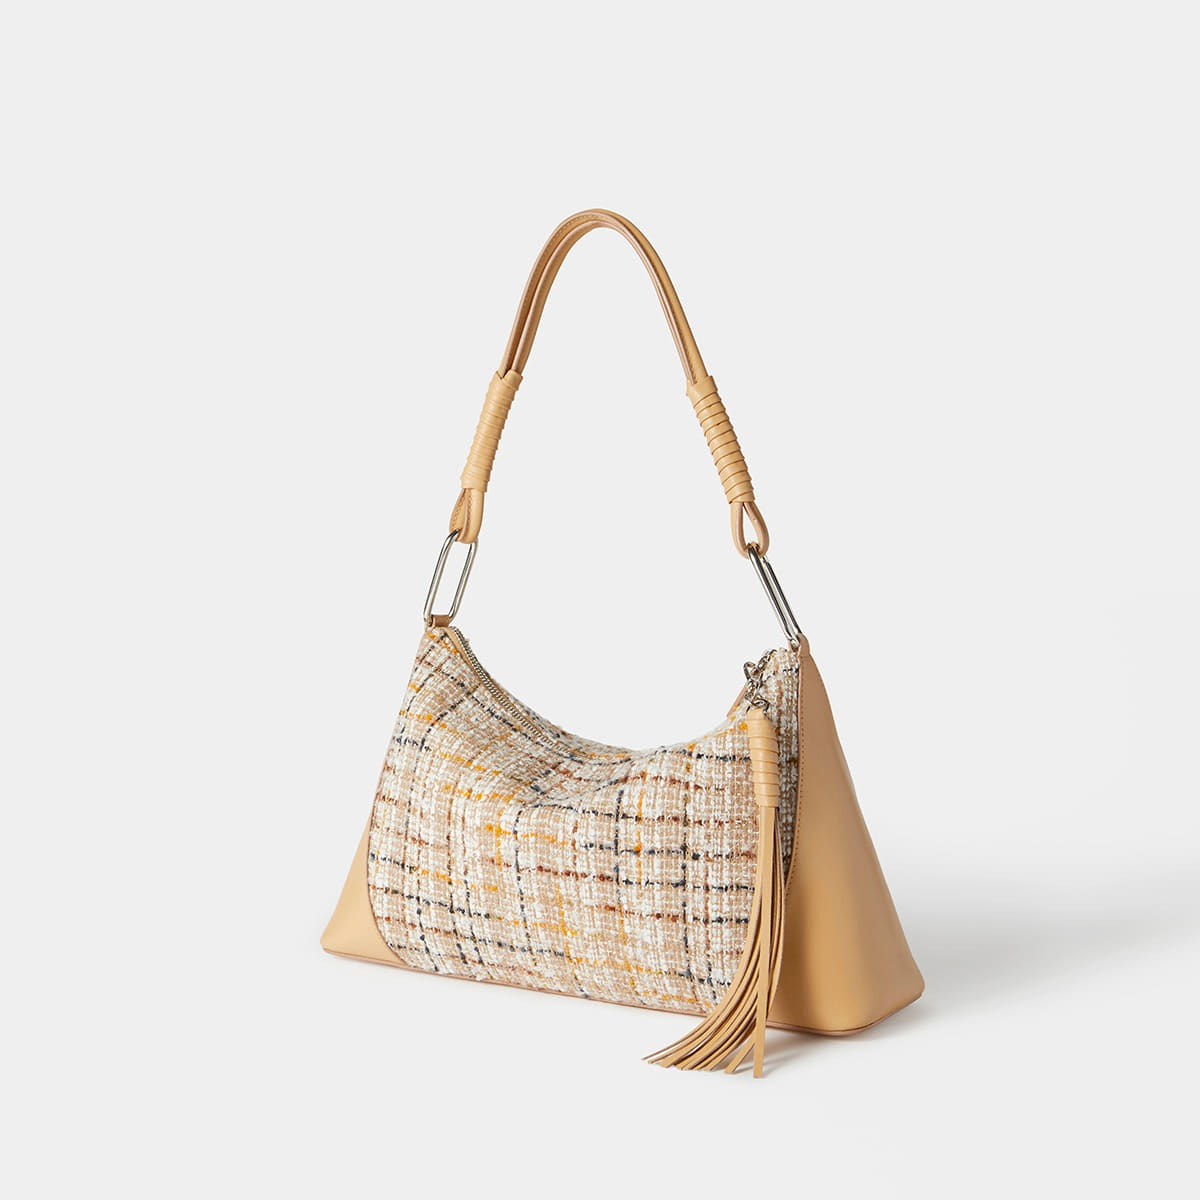 Low Bag (Beige tweed)